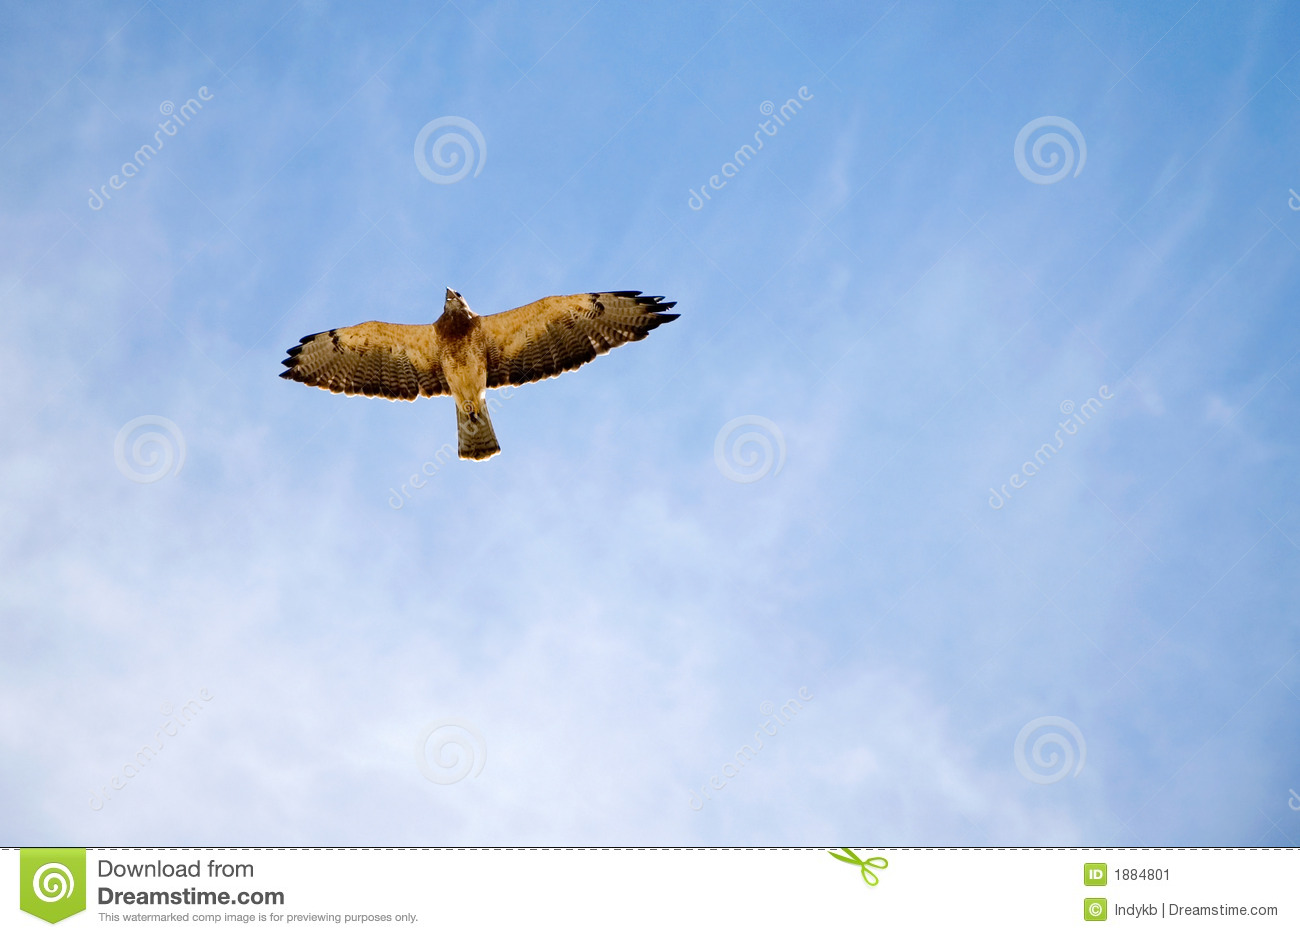 Hawk In The Sky Stock Image - Image: 1884801